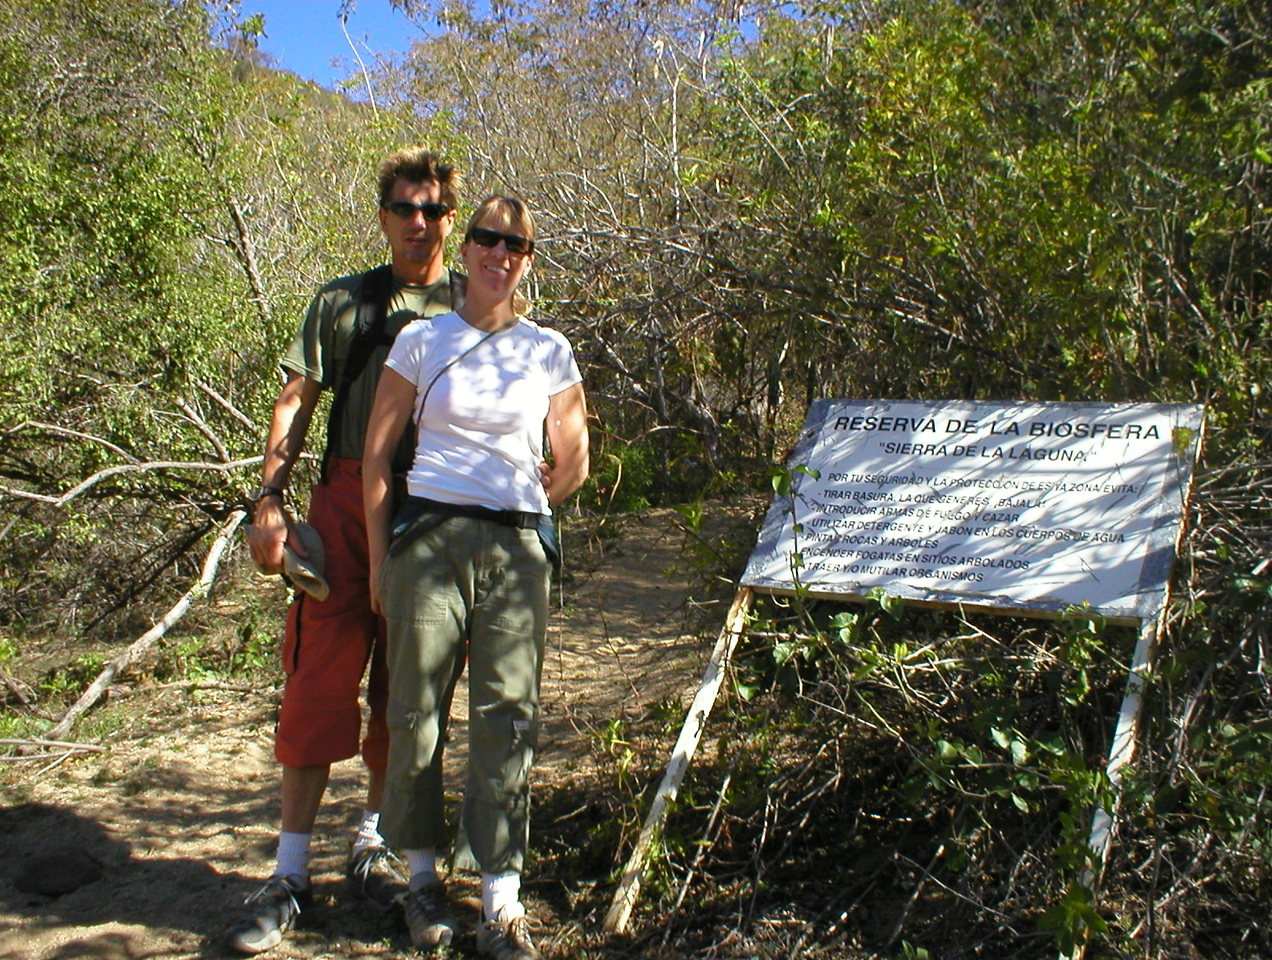 Reserva de la Biospeha. This hike takes you through seven Biospheres.